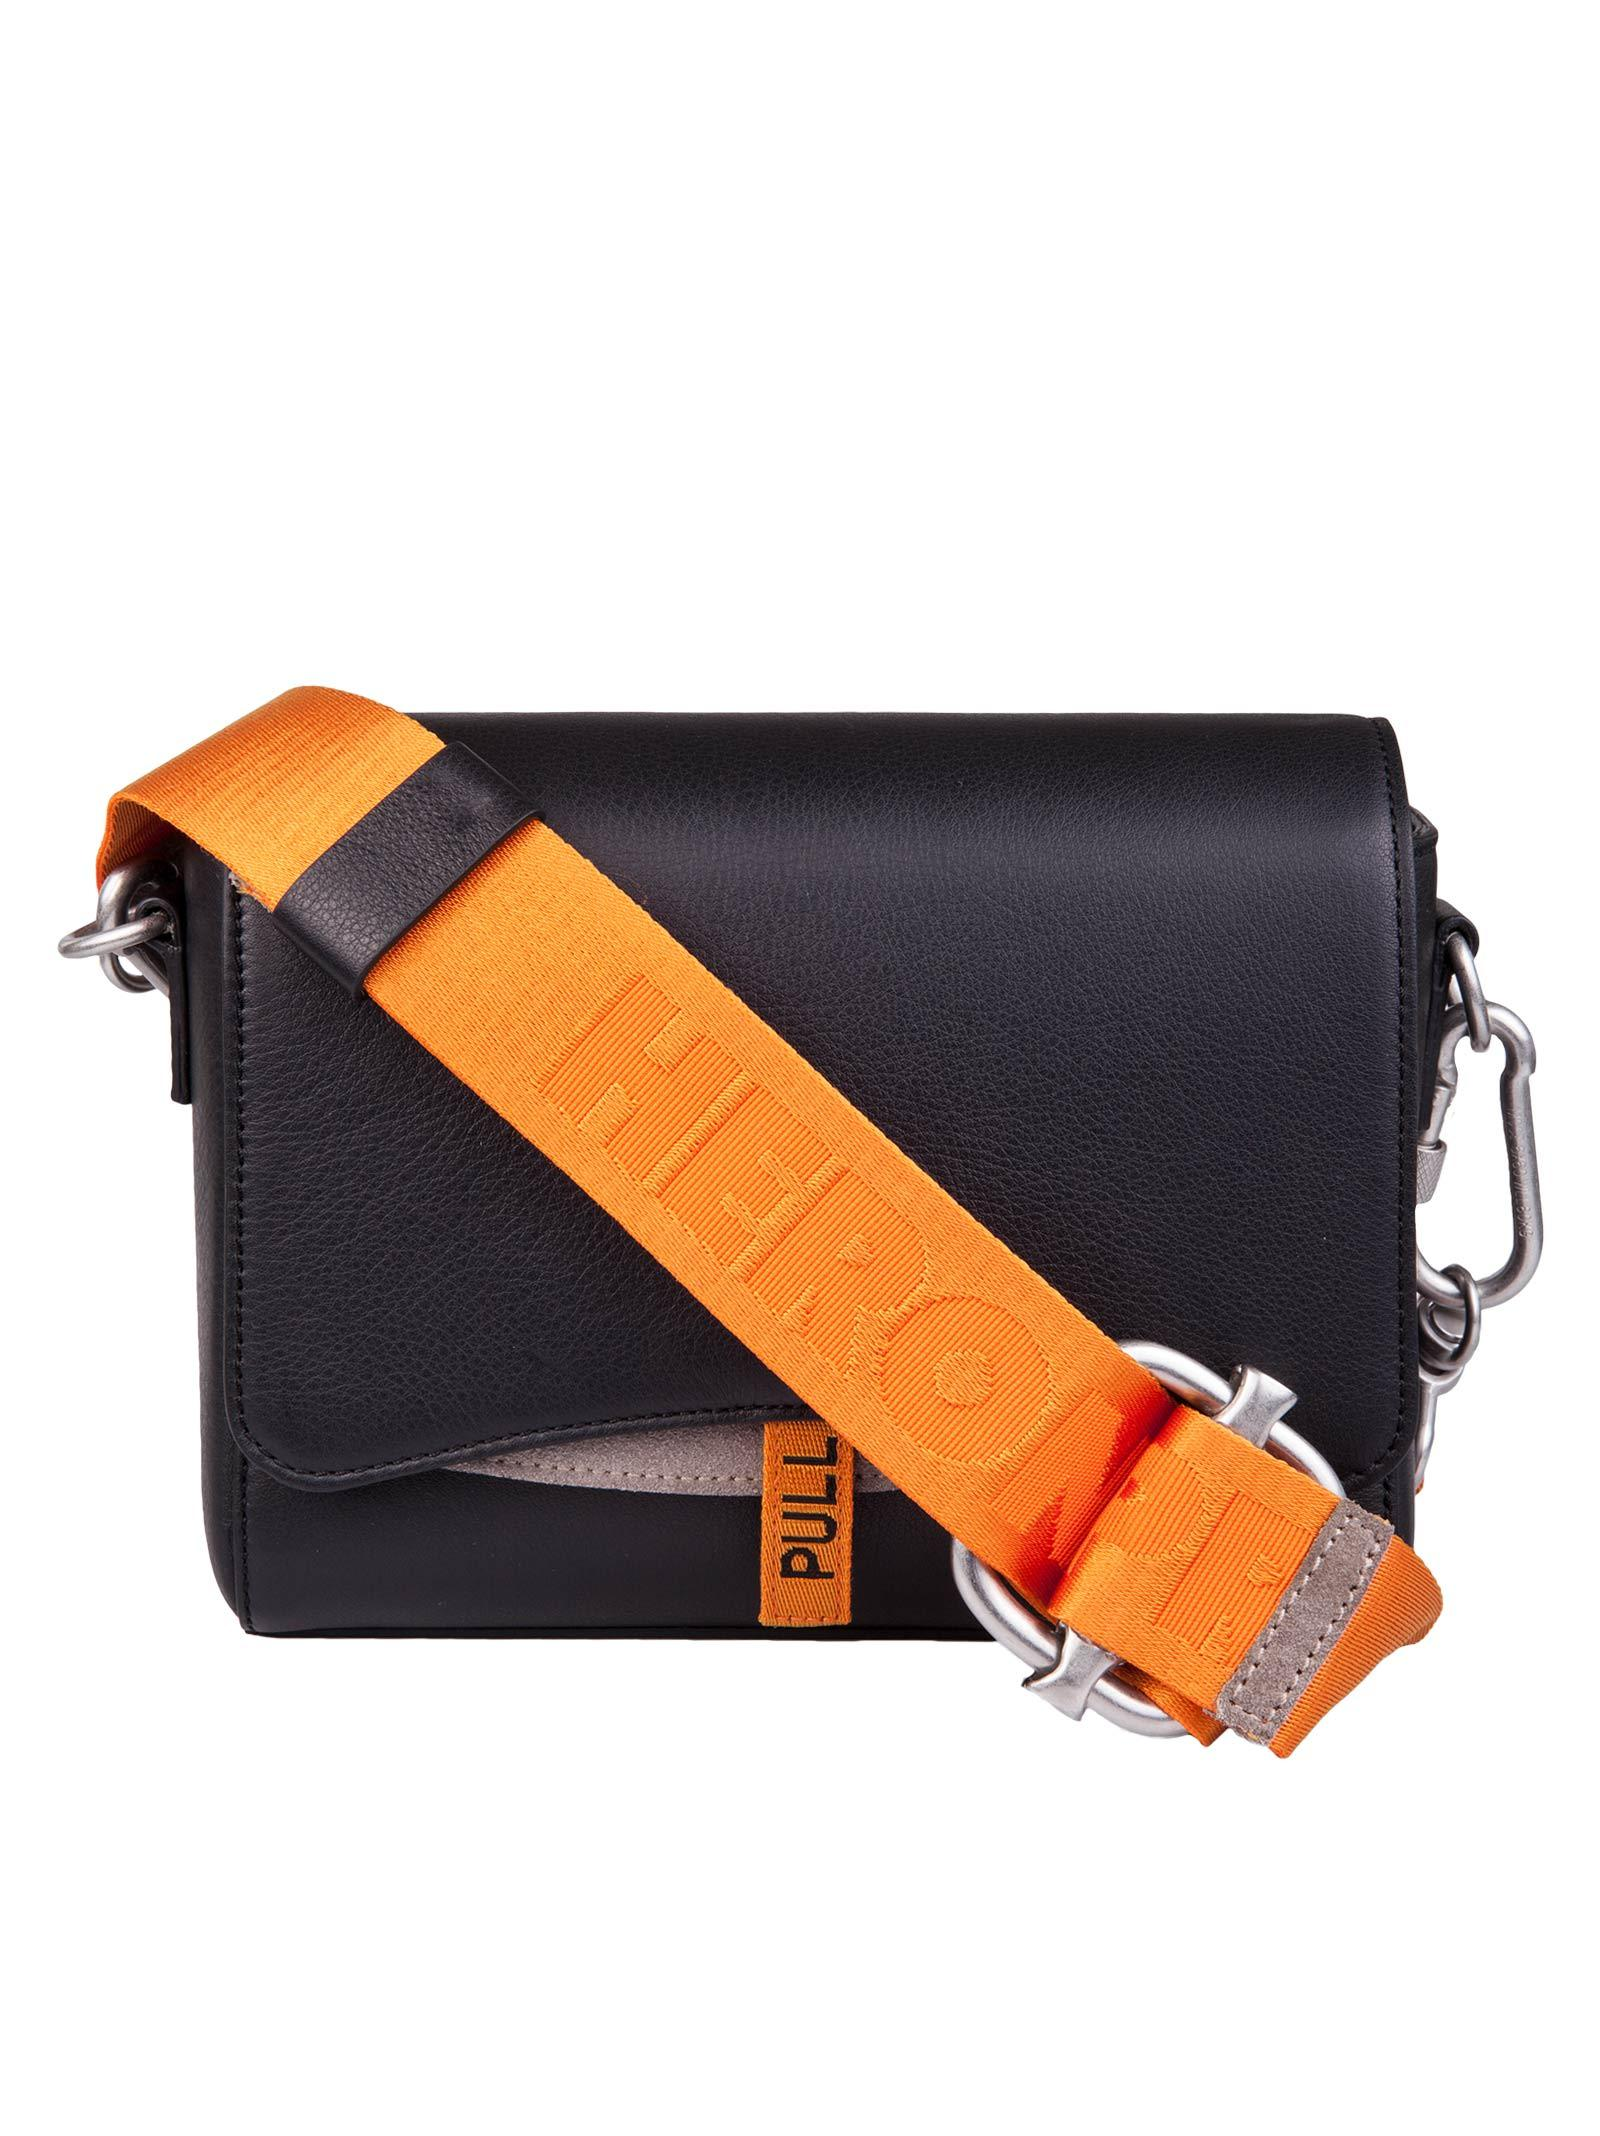 497c016a5db5 Heron Preston Shoulder Bag In Nero Arancione